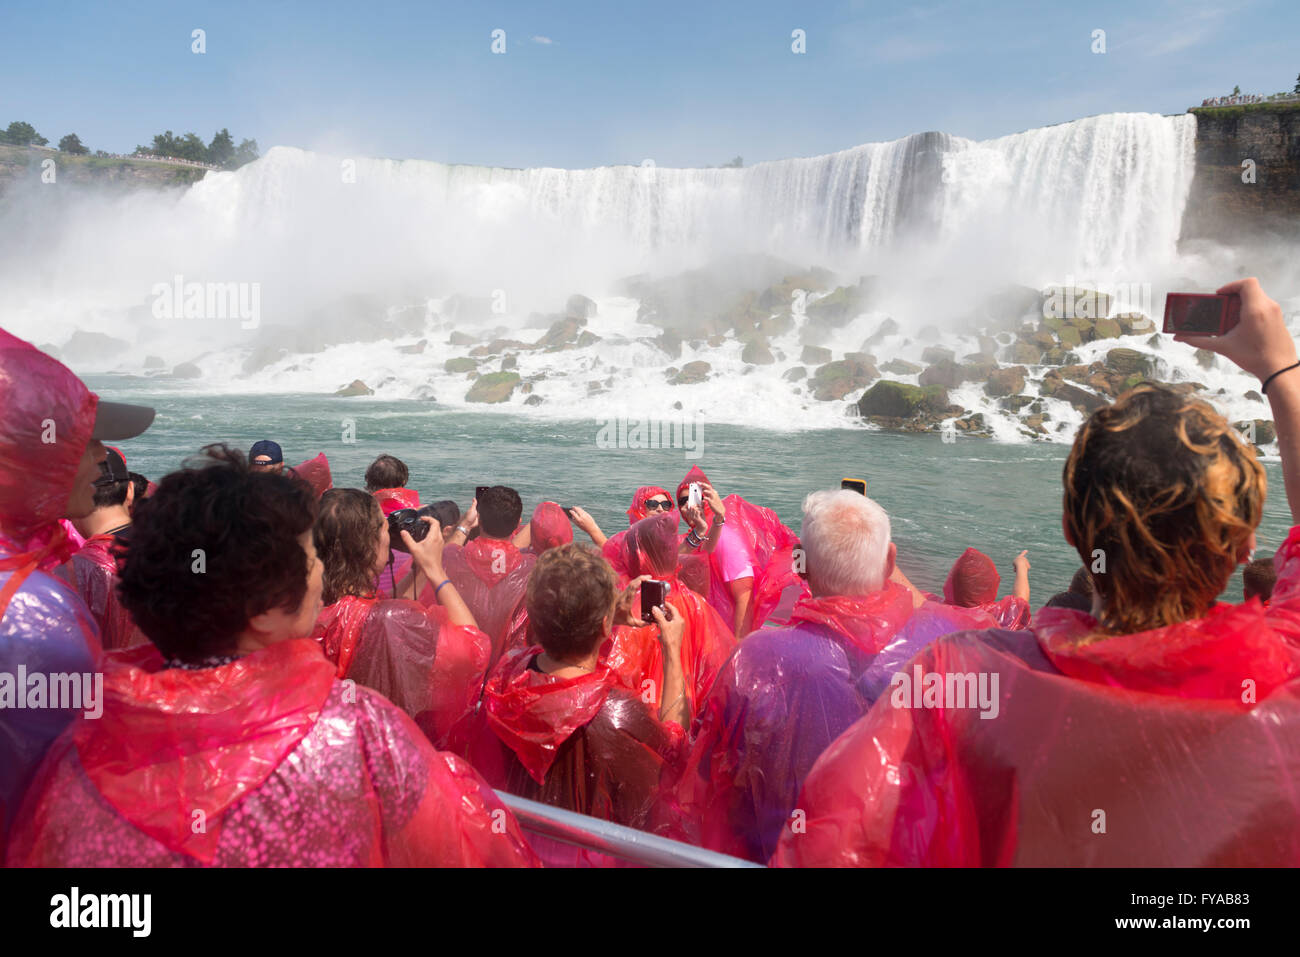 People in pink raincoats on a boat ride at Niagara Falls, Hornblower Niagara Cruises, Ontario, Canada - Stock Image